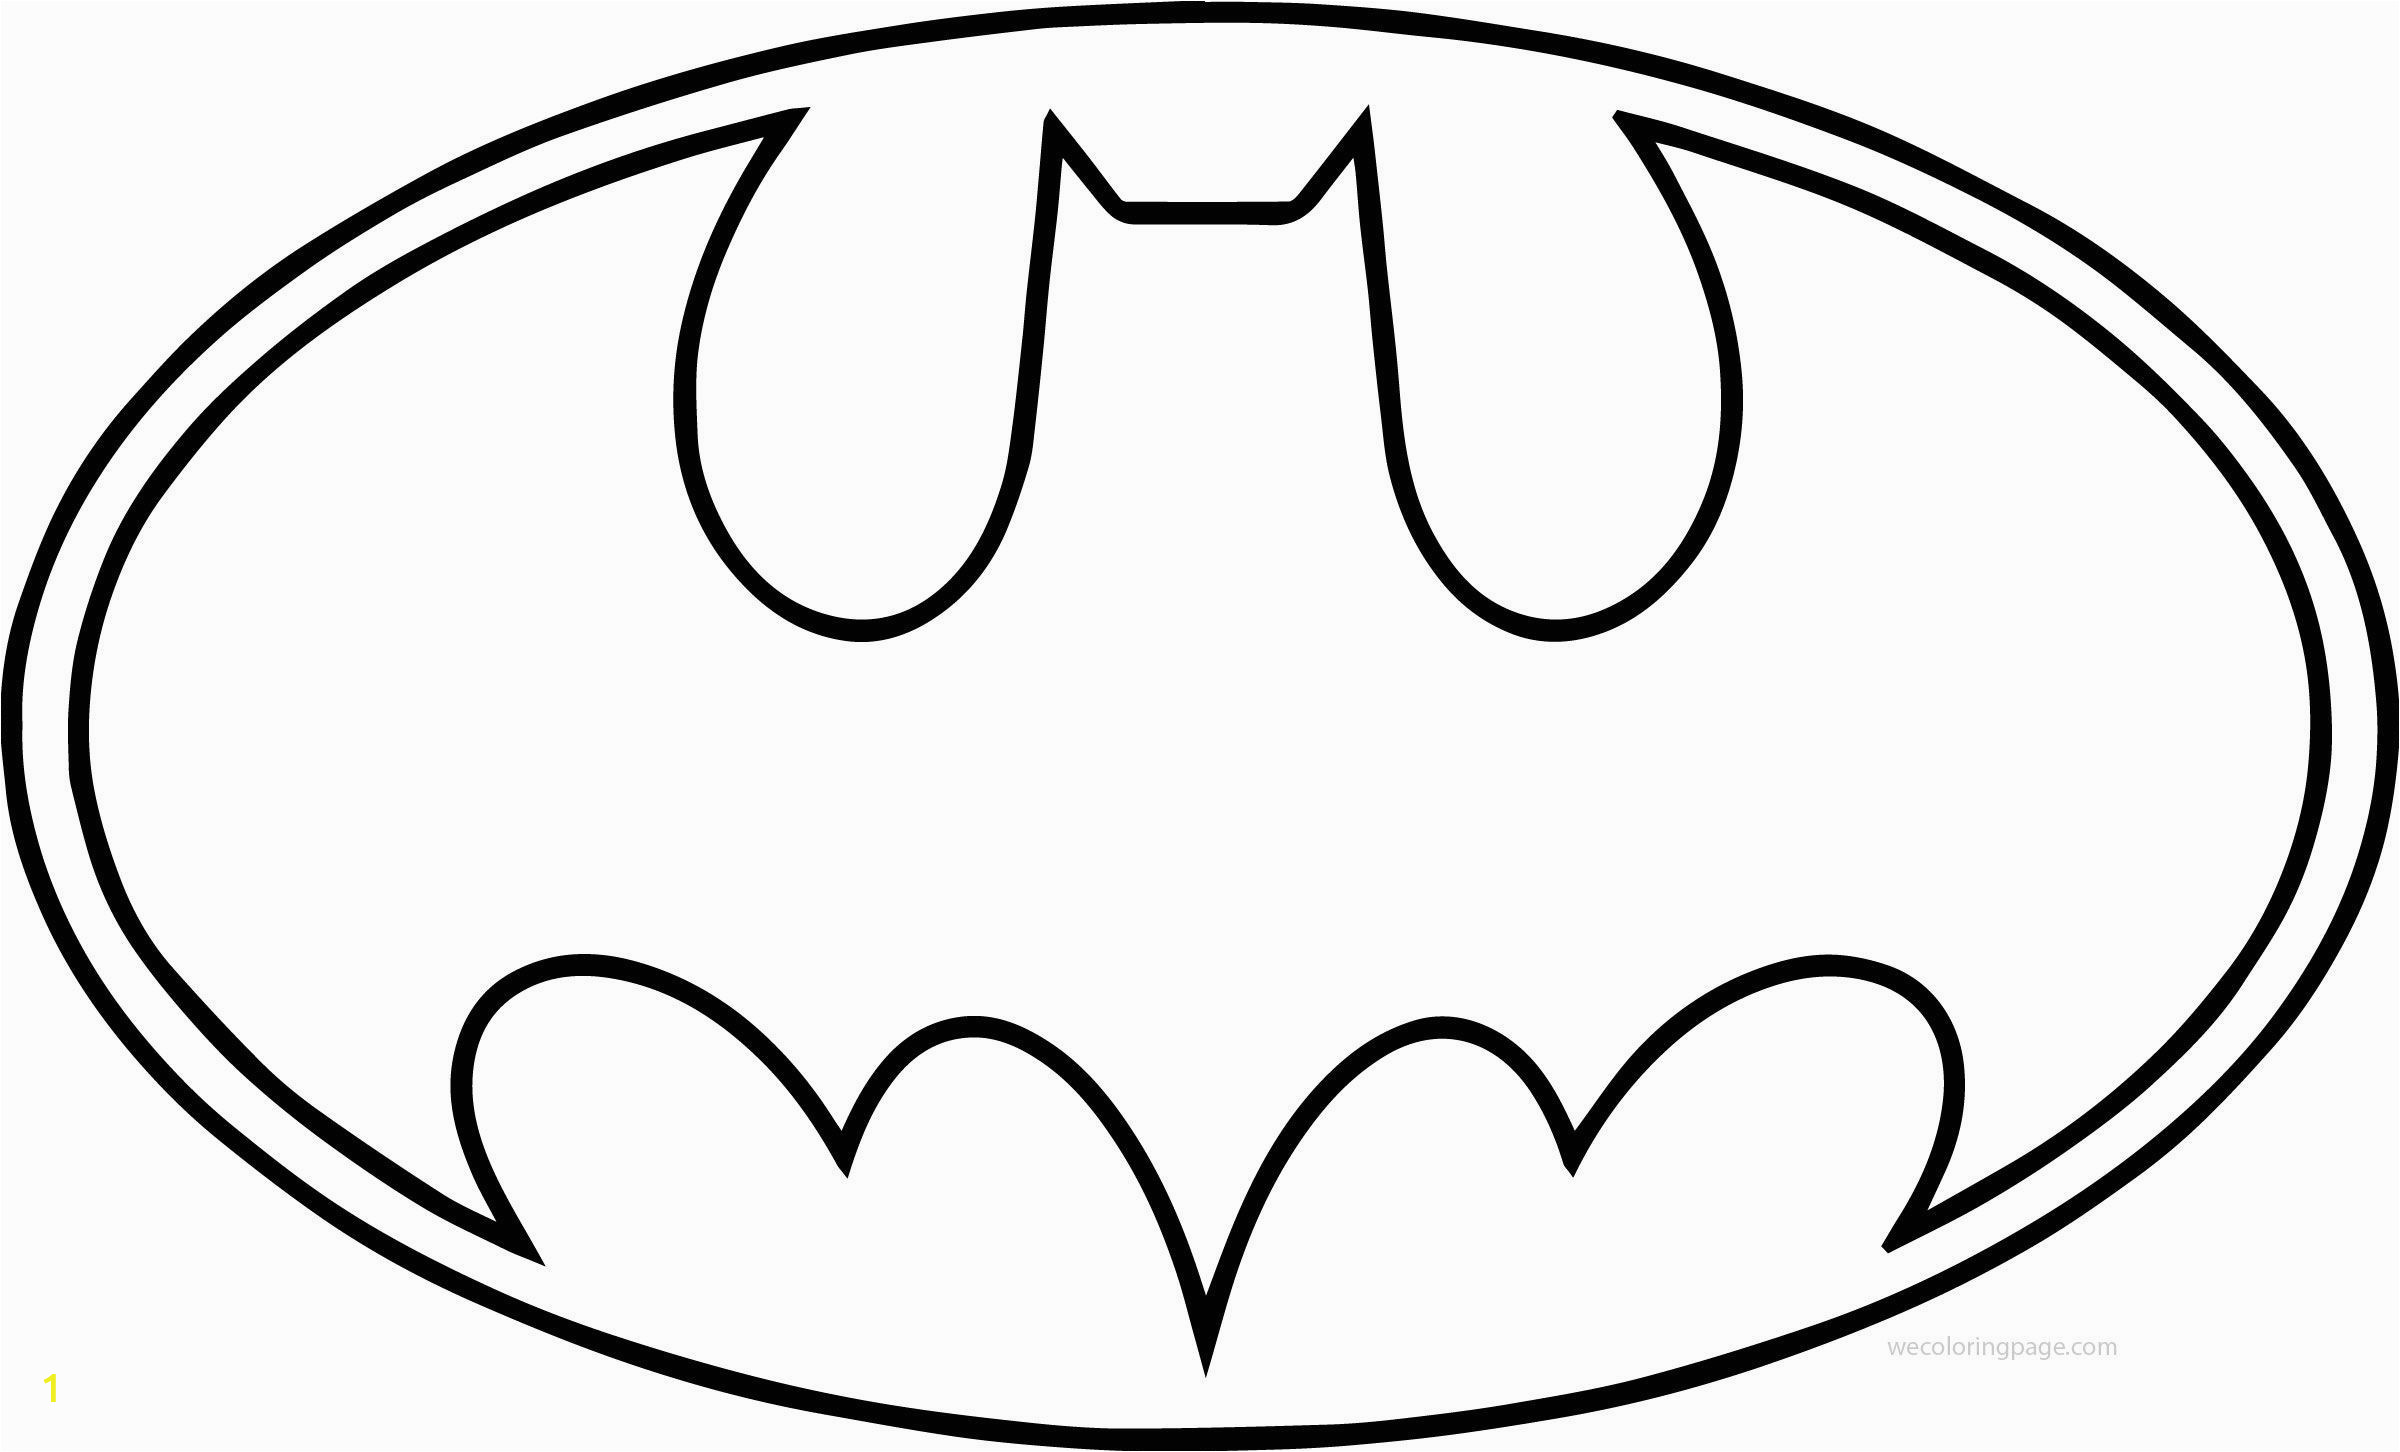 Avengers Symbol Coloring Page Batman Logo Coloring Pages and Superhero